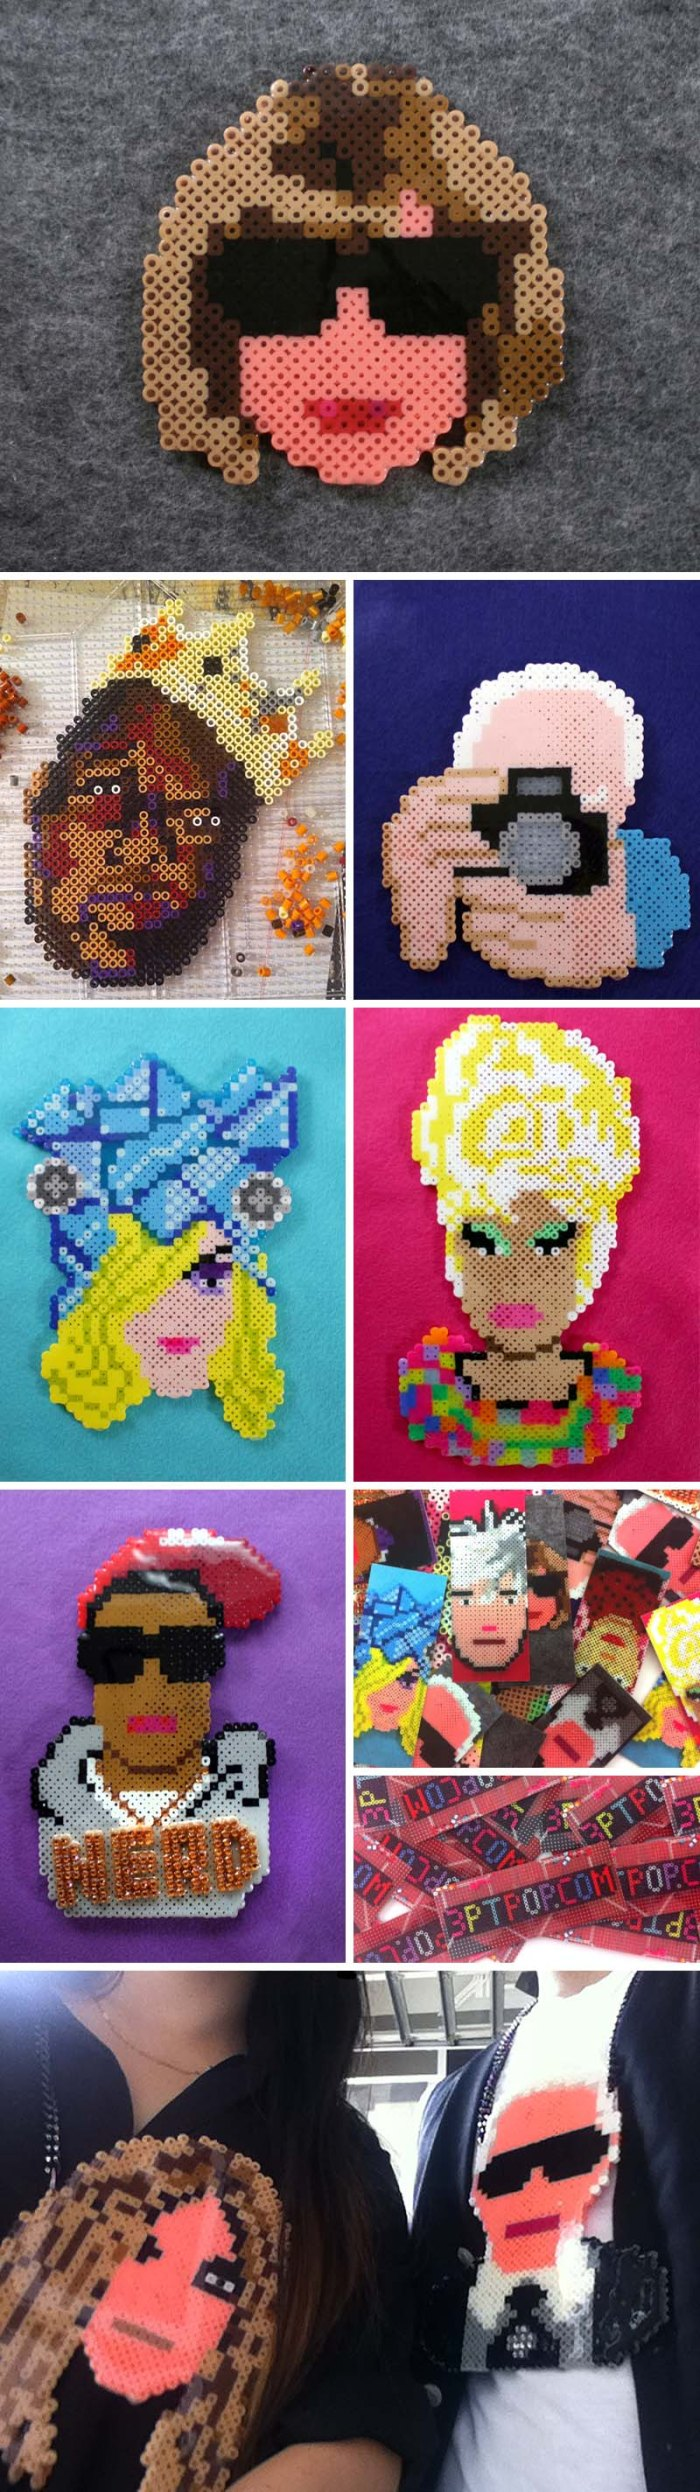 3PTPOP, Victor Pump, Victor-John Villanueva, Perler Bead pop art accessories